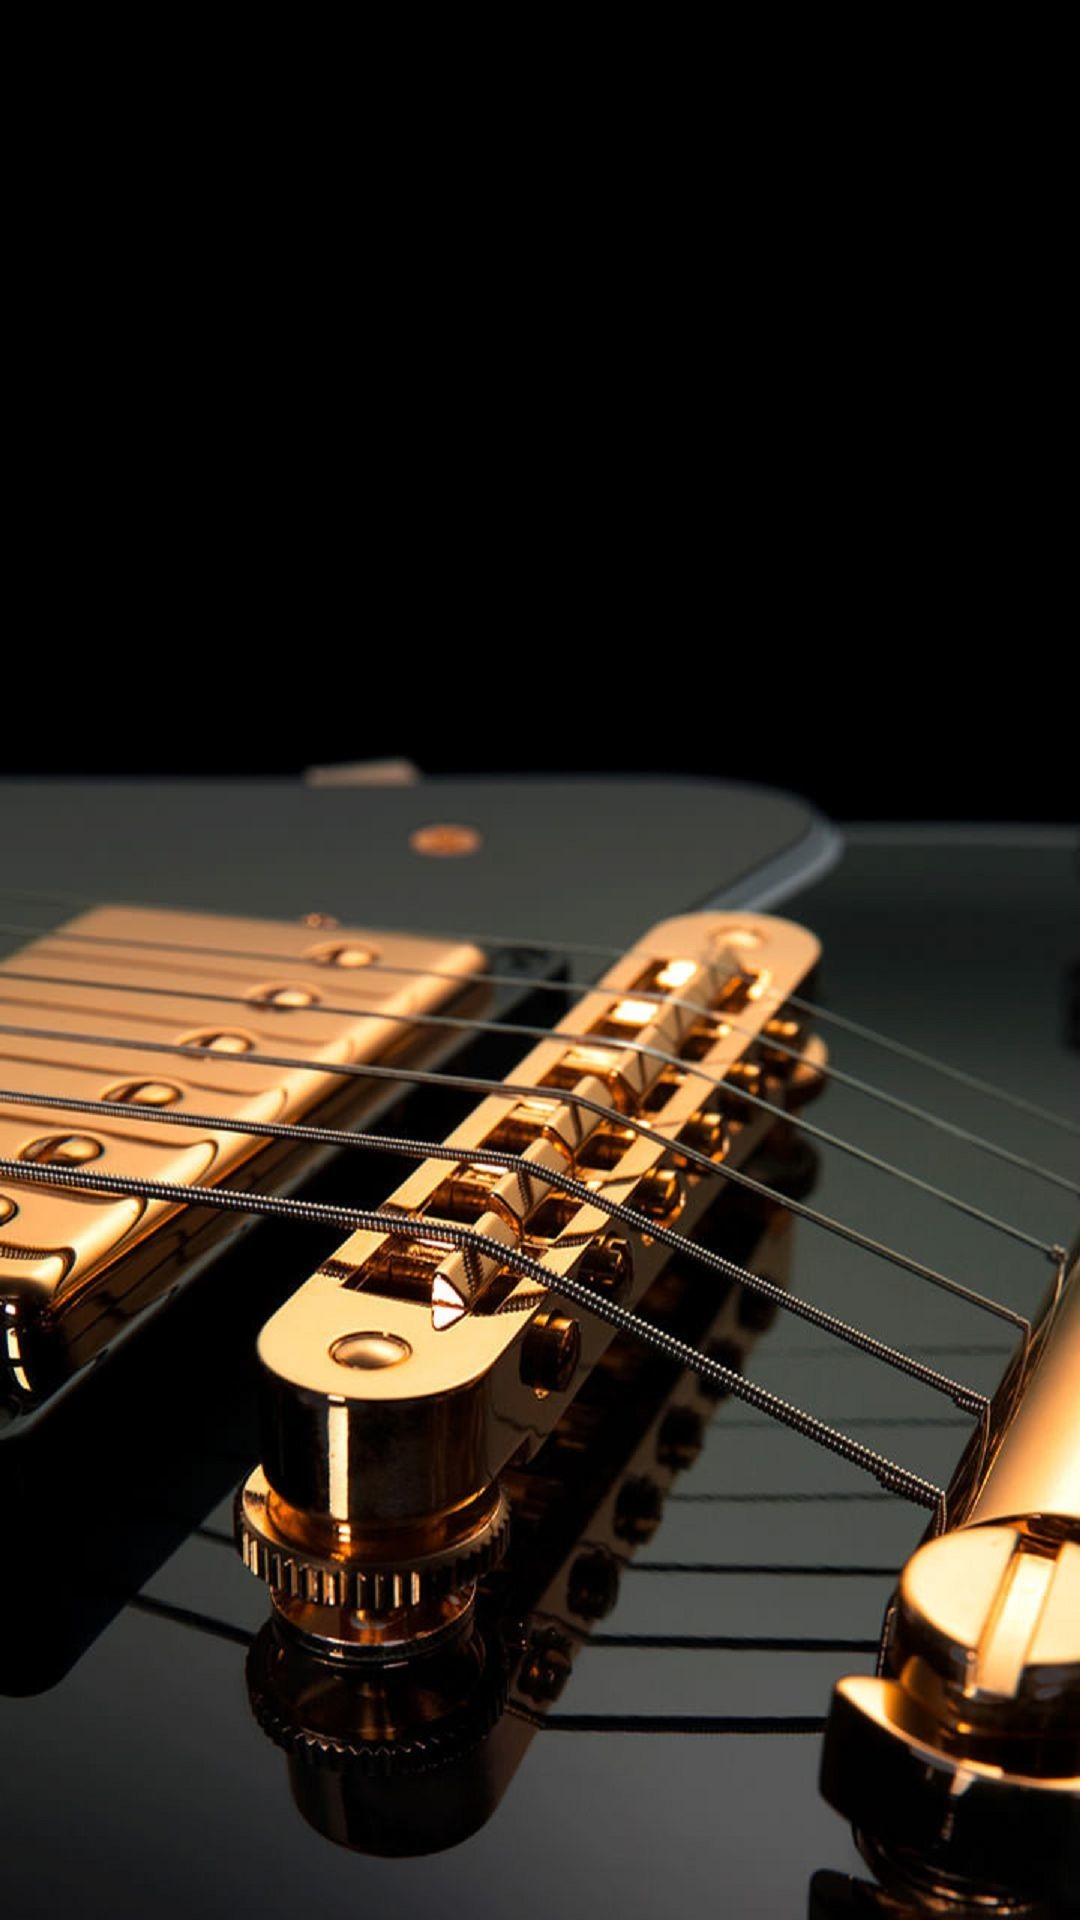 Music instrument free download for android phones